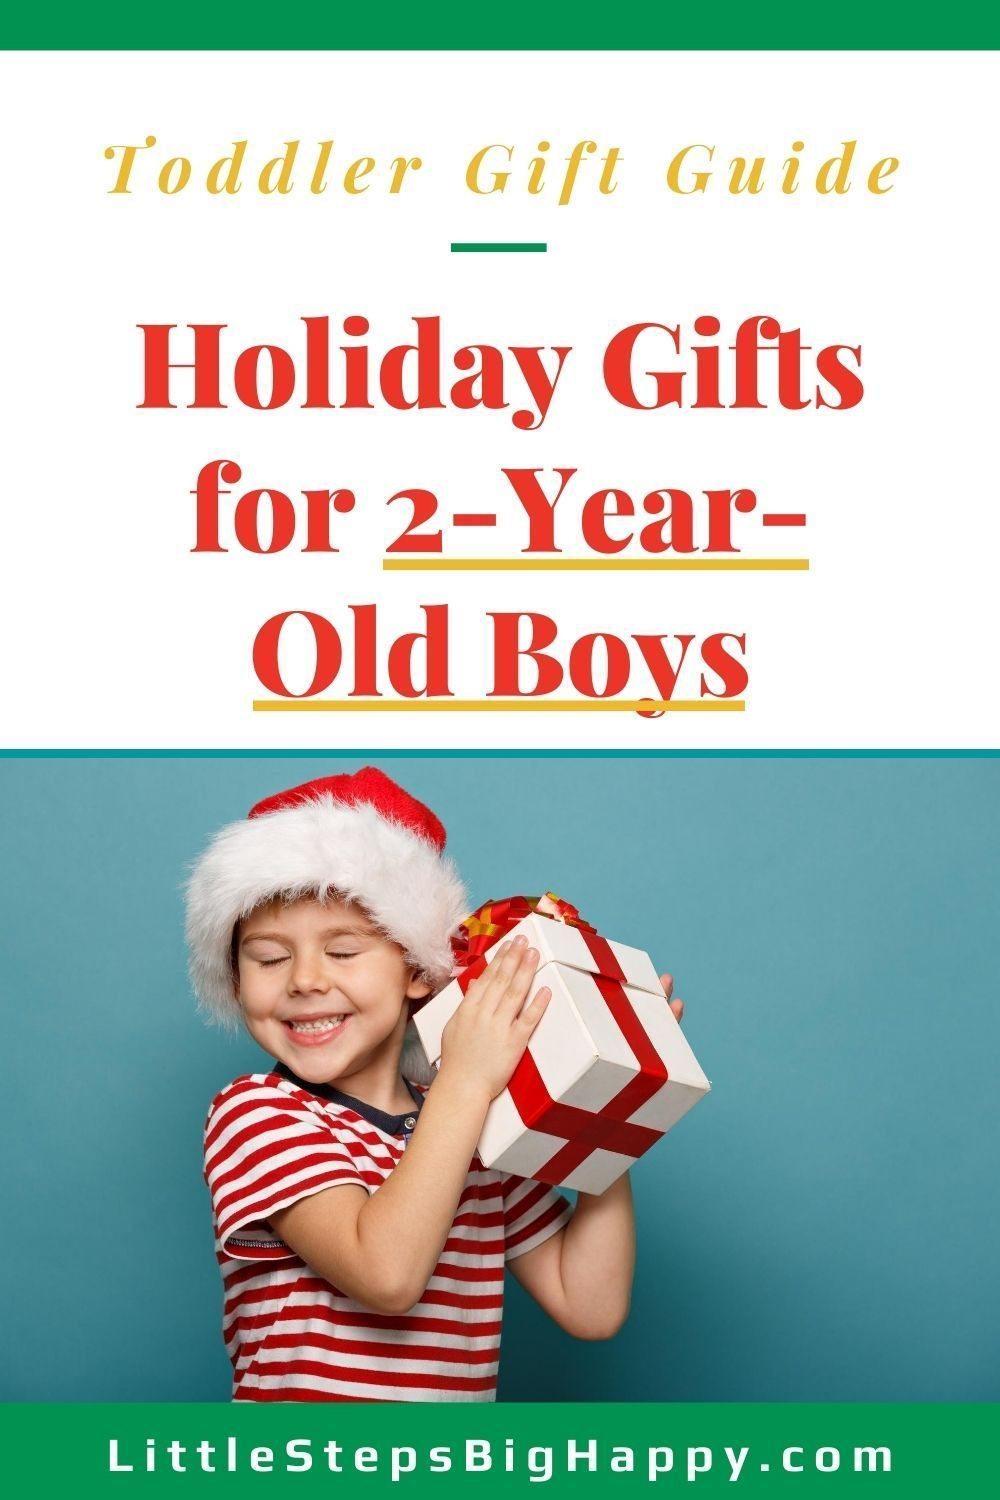 Christmas Wish List for a 2 Year Old Boy | Amazon Gift Guide in